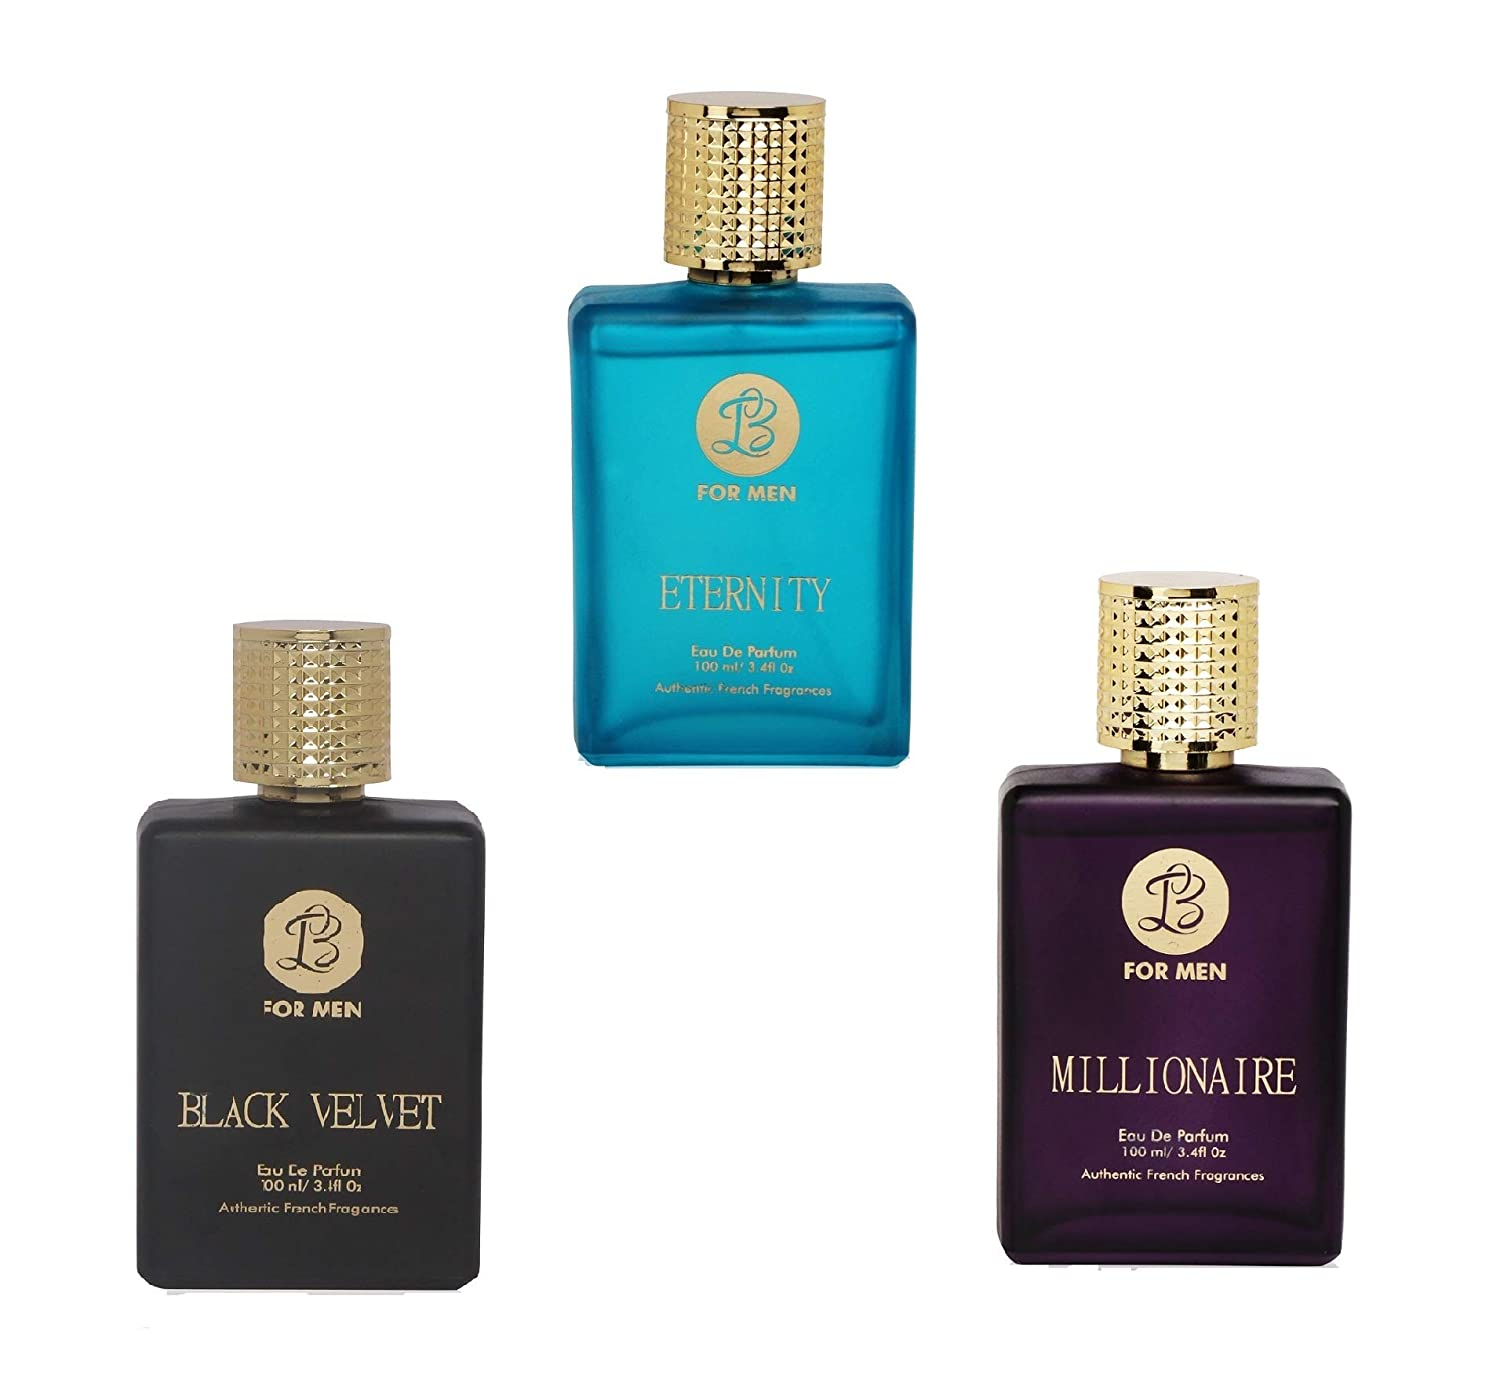 d056577a1679 Buy Lyla Blanc ETERNITY BLACK VELVET MILLIONAIRE Perfume Spray for Men-  (Set of 3) (100ml each) Online at Low Prices in India - Amazon.in